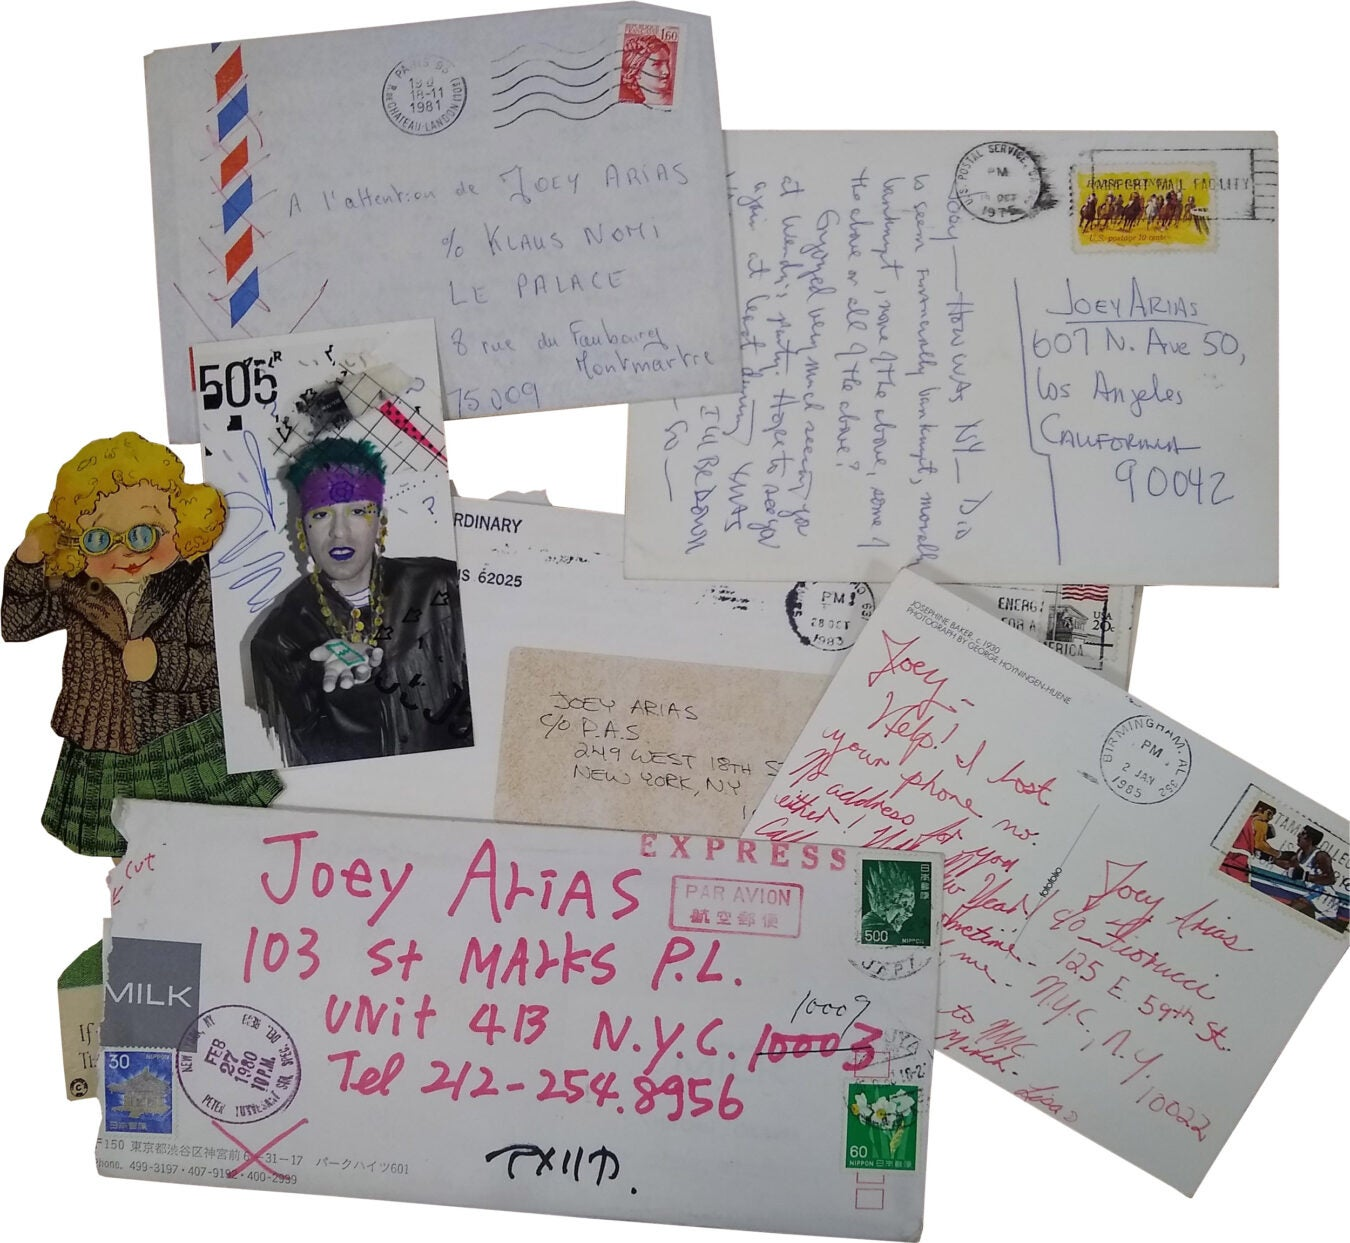 Joey Arias postcards, envelopes, letters.